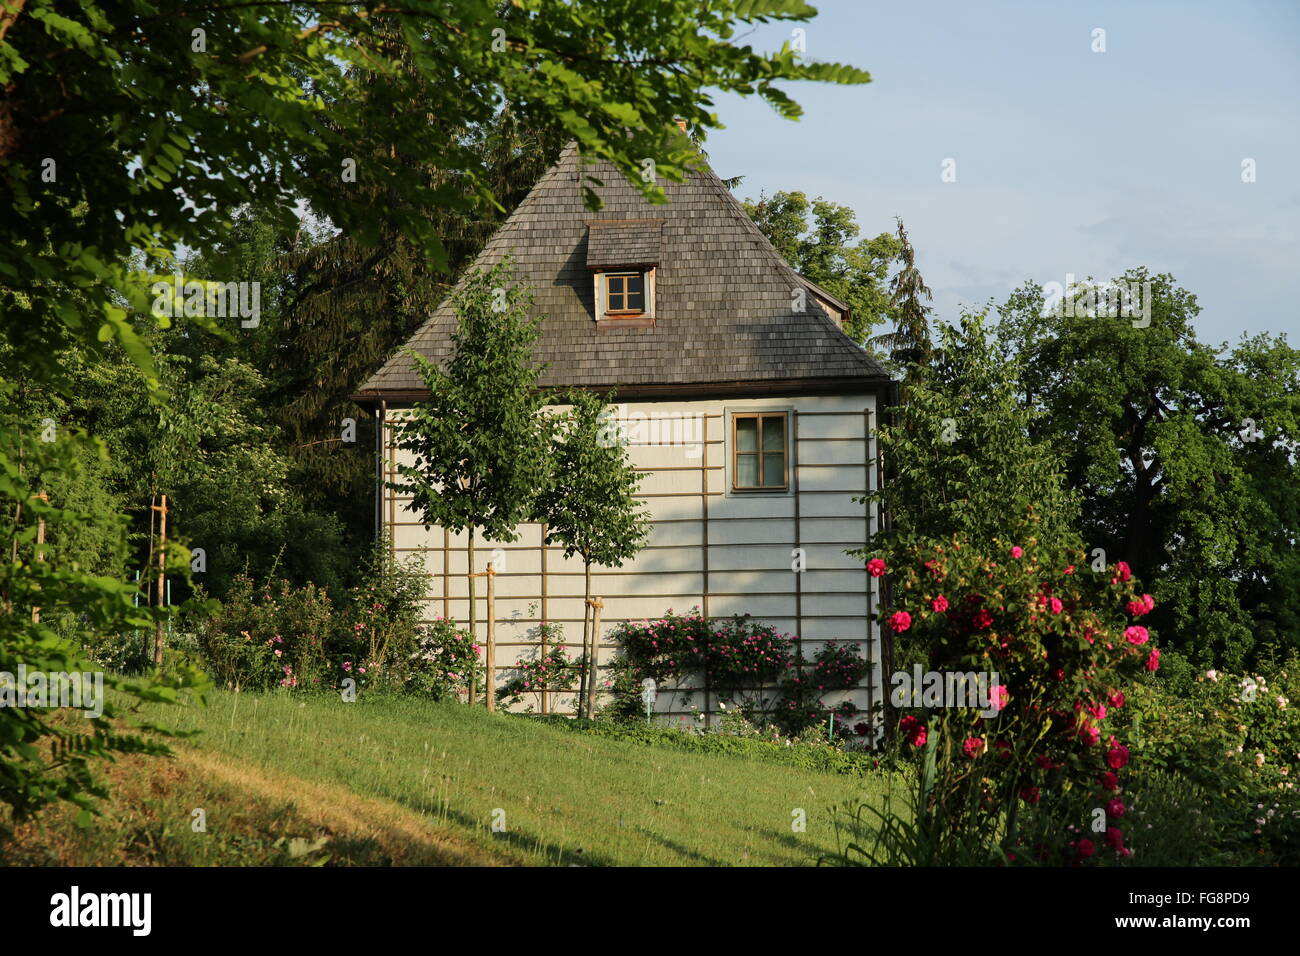 geography / travel, Germany, Thuringia, Weimar, Park at the Ilm River, Goethe summer house, Additional-Rights-Clearance - Stock Image